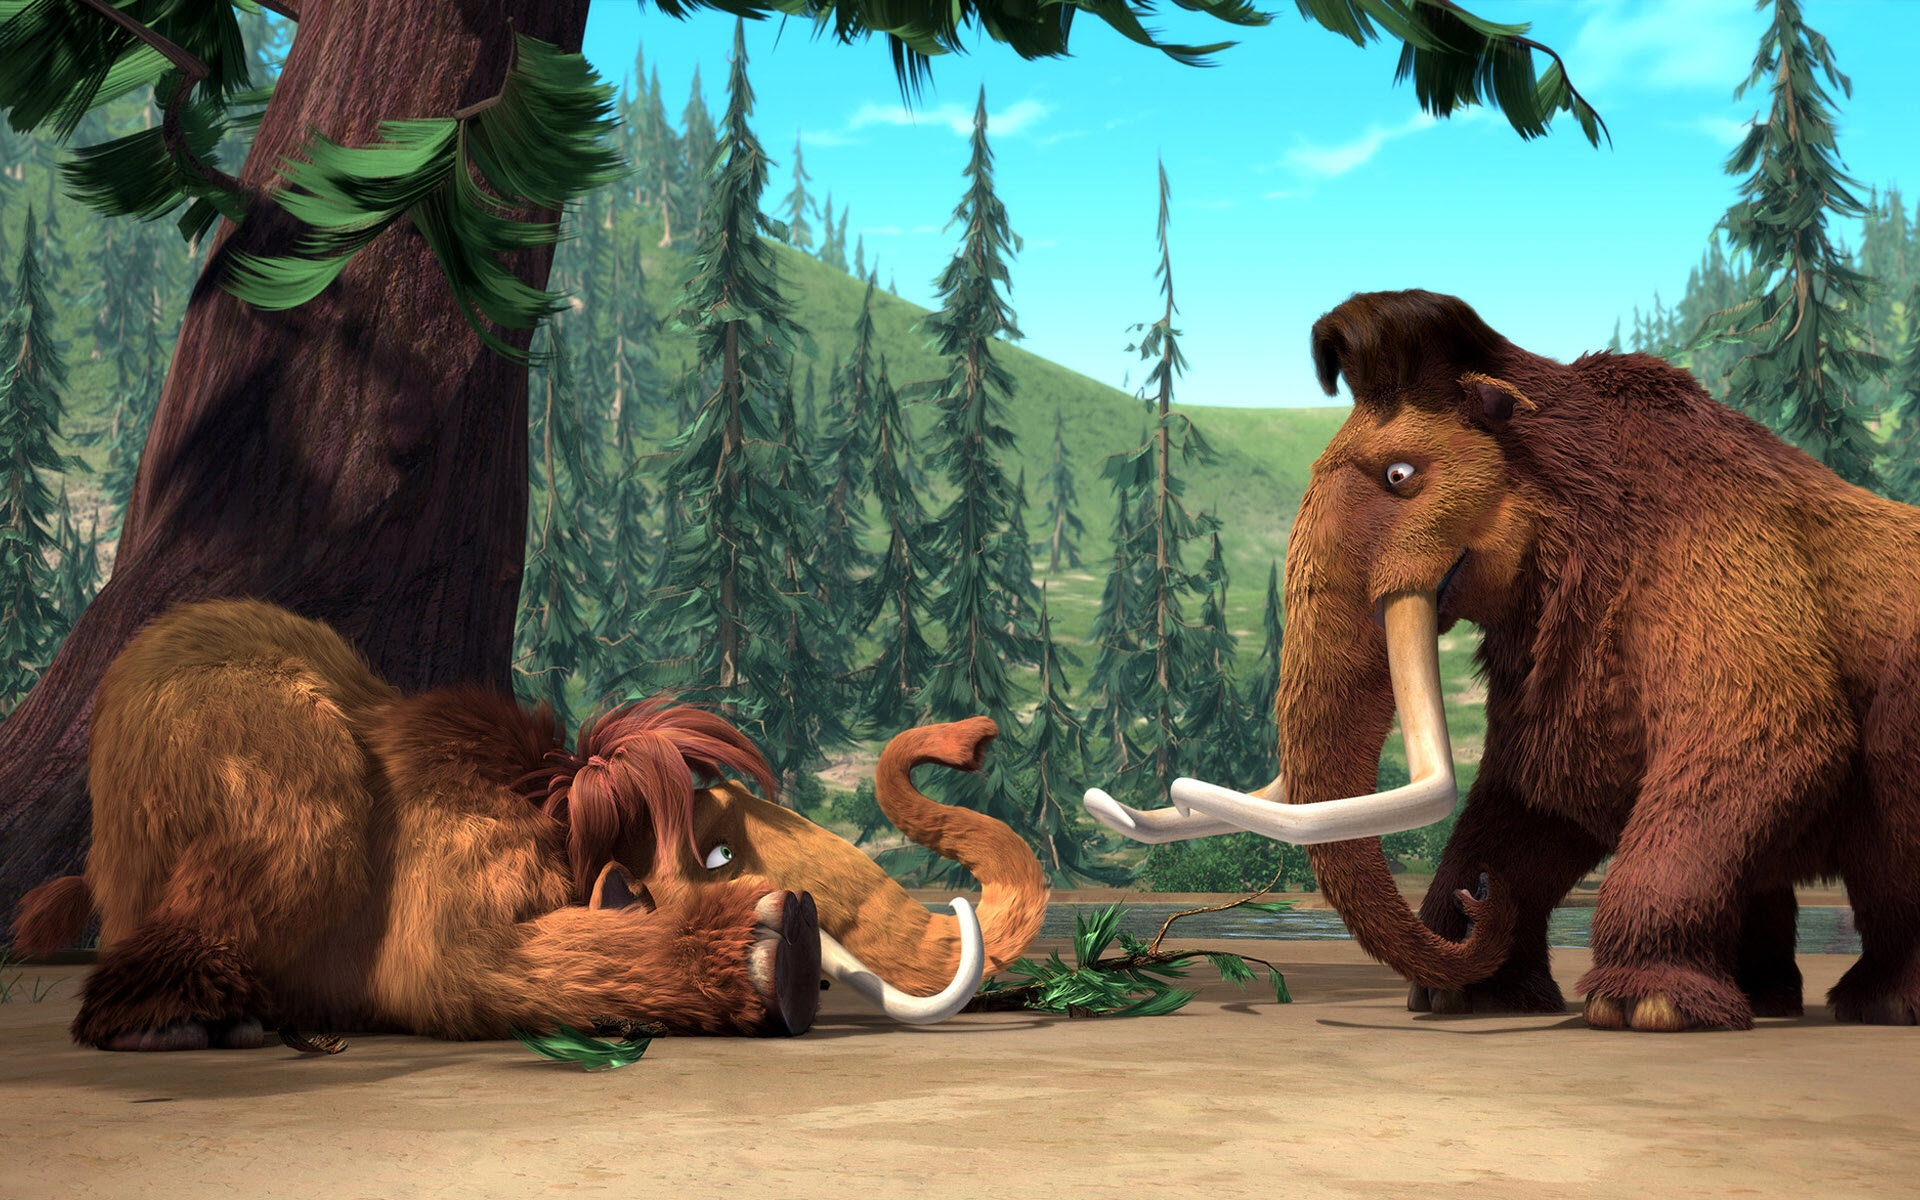 manny & ellie ice age wallpapers in jpg format for free download